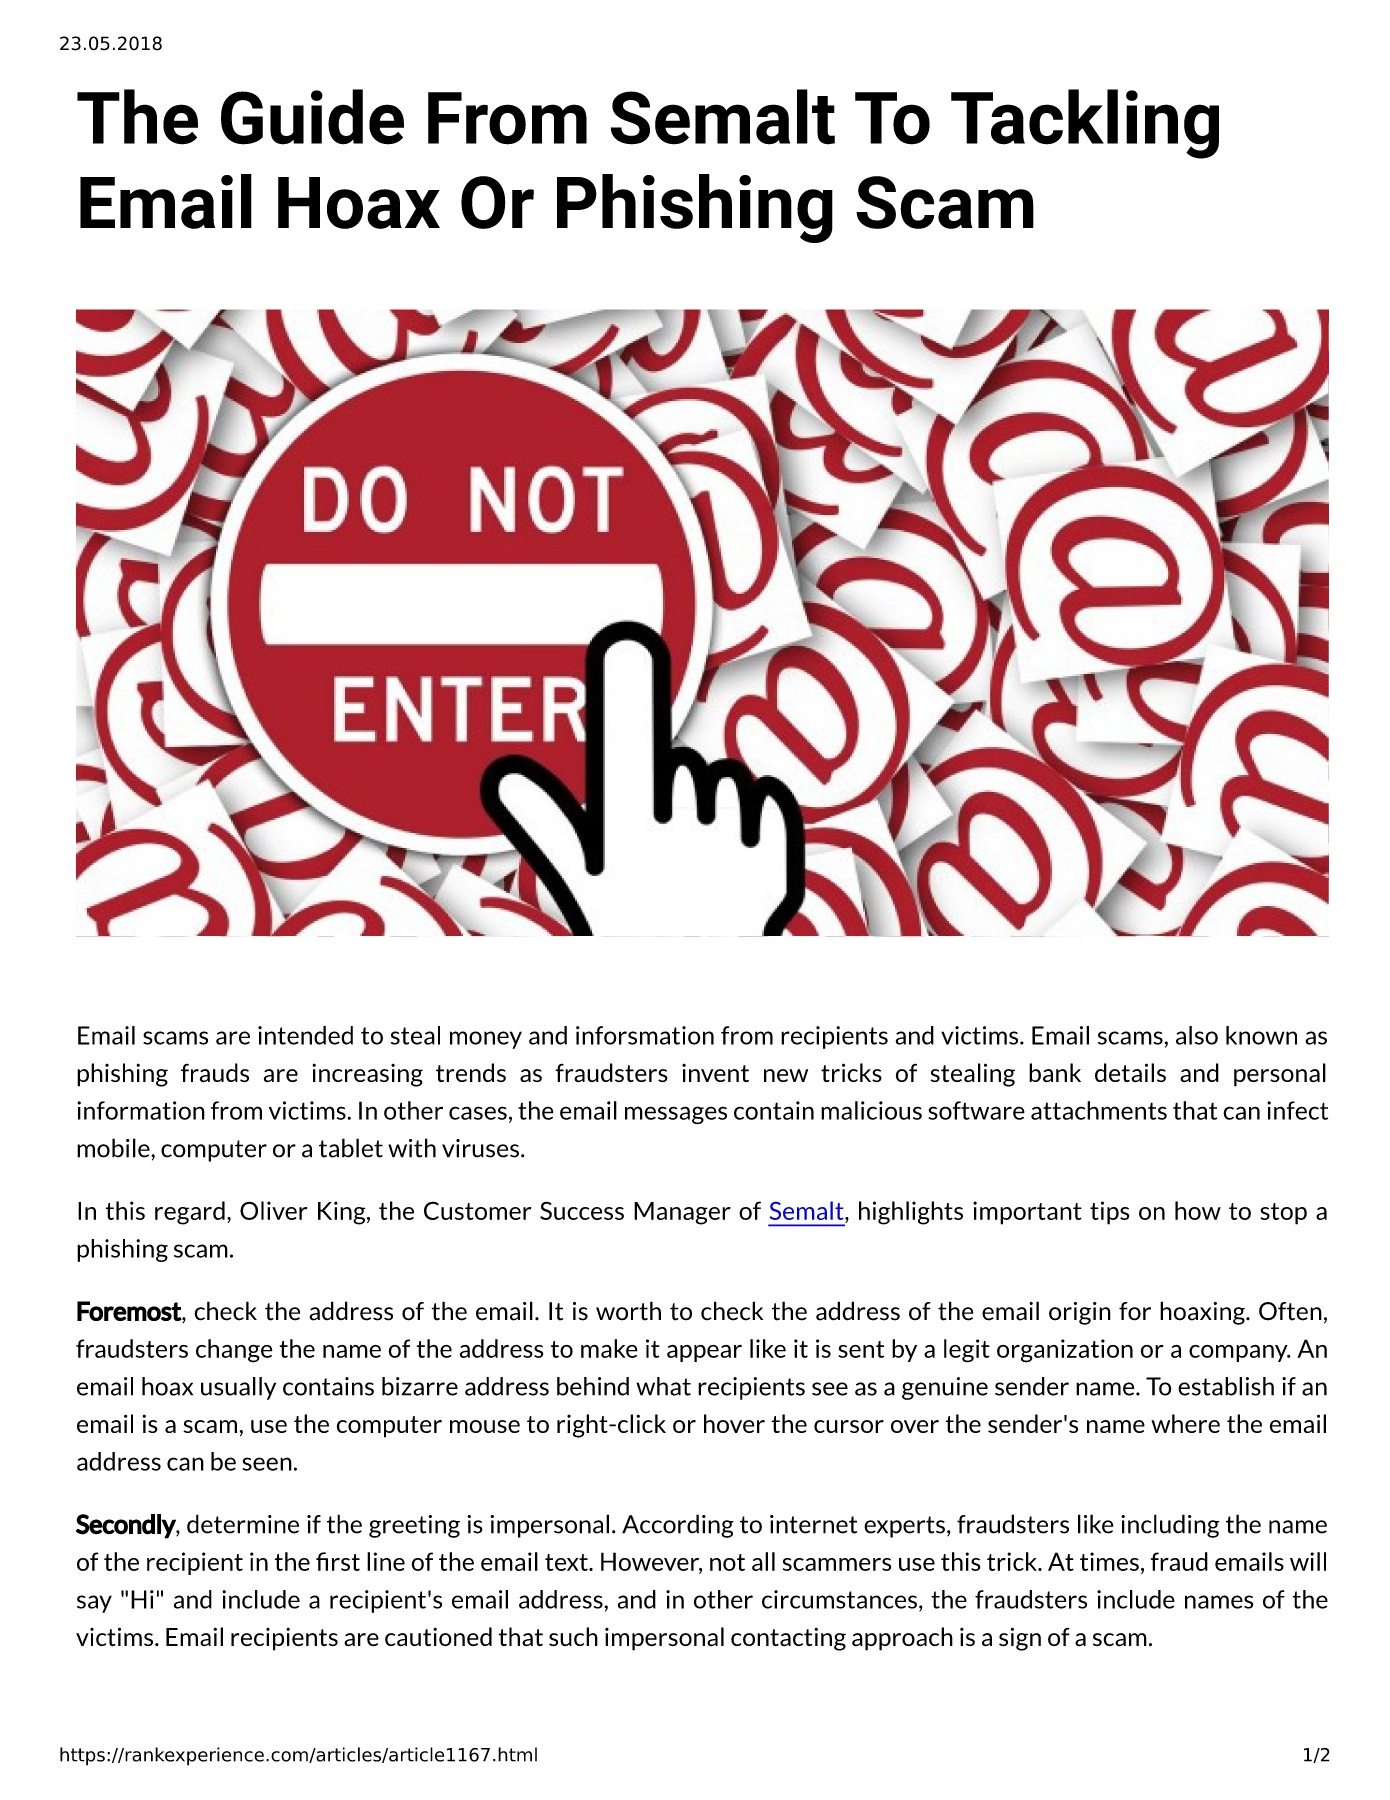 The Guide From Semalt To Tackling Email Hoax Or Phishing Scam Pages